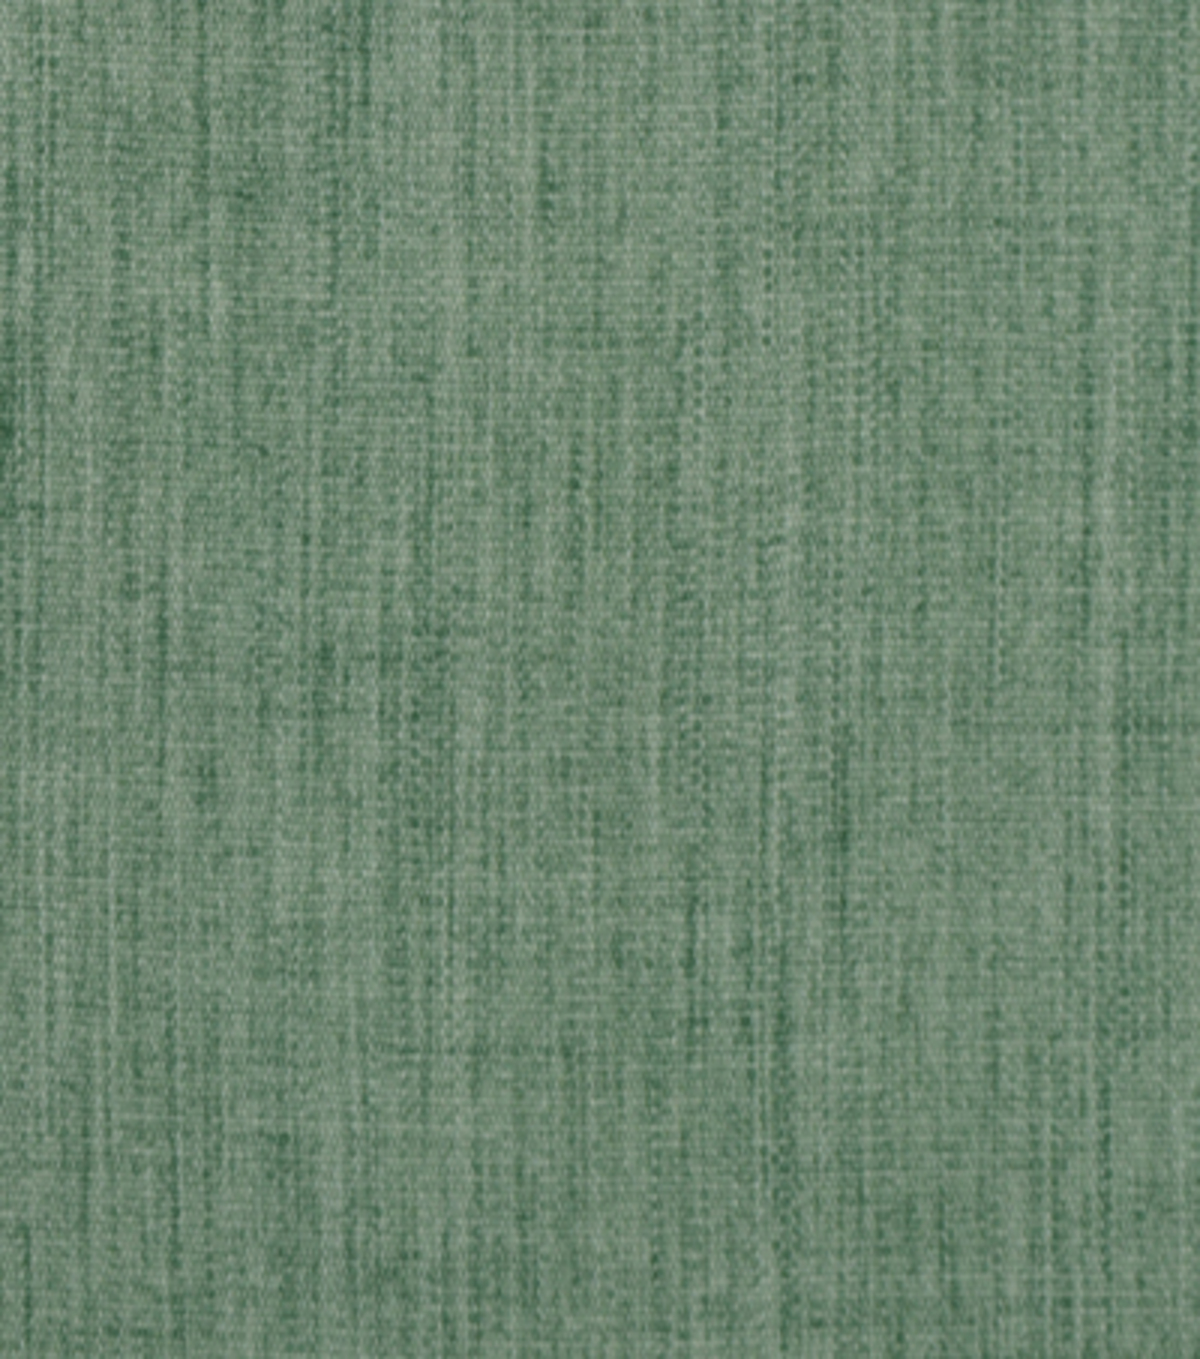 Home Decor 8\u0022x8\u0022 Fabric Swatch-Covington Ibiza 521 Aquamarine